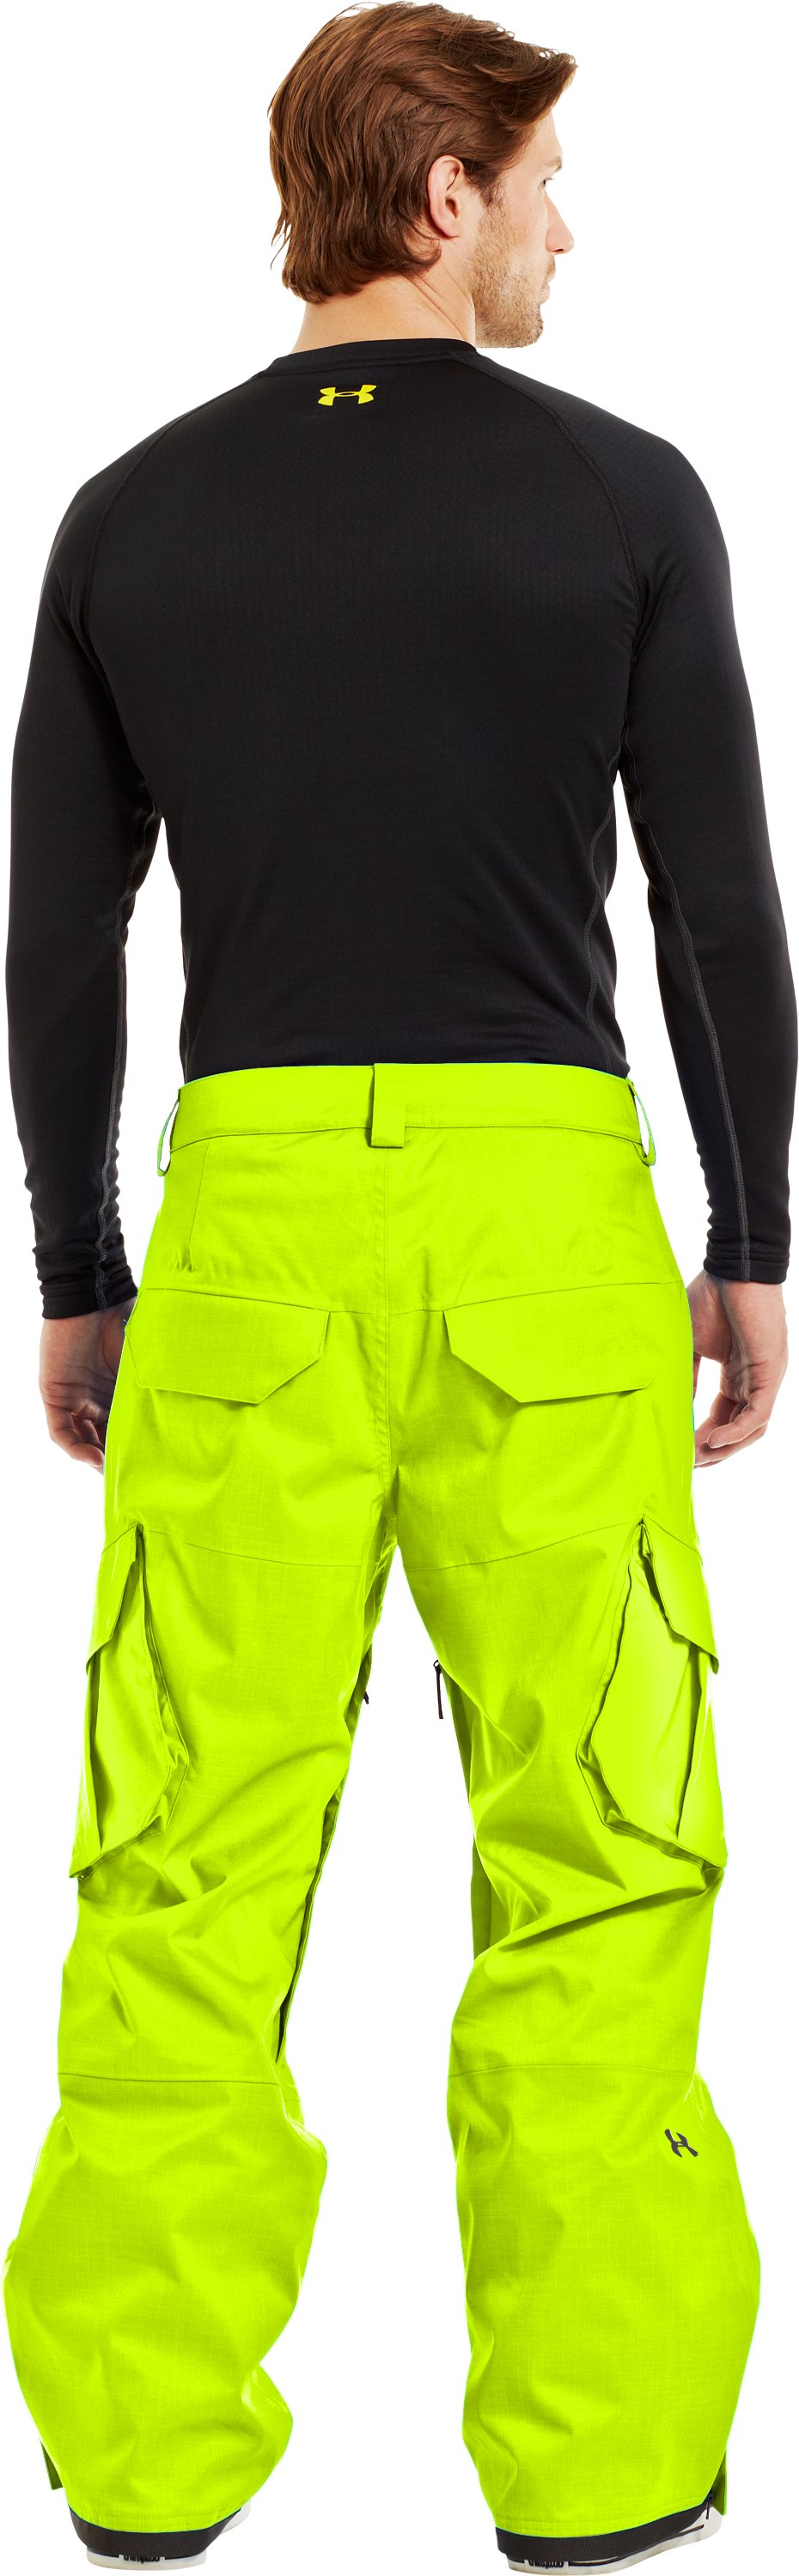 Men's ColdGear® Infrared Snocone Pants, High-Vis Yellow, Back